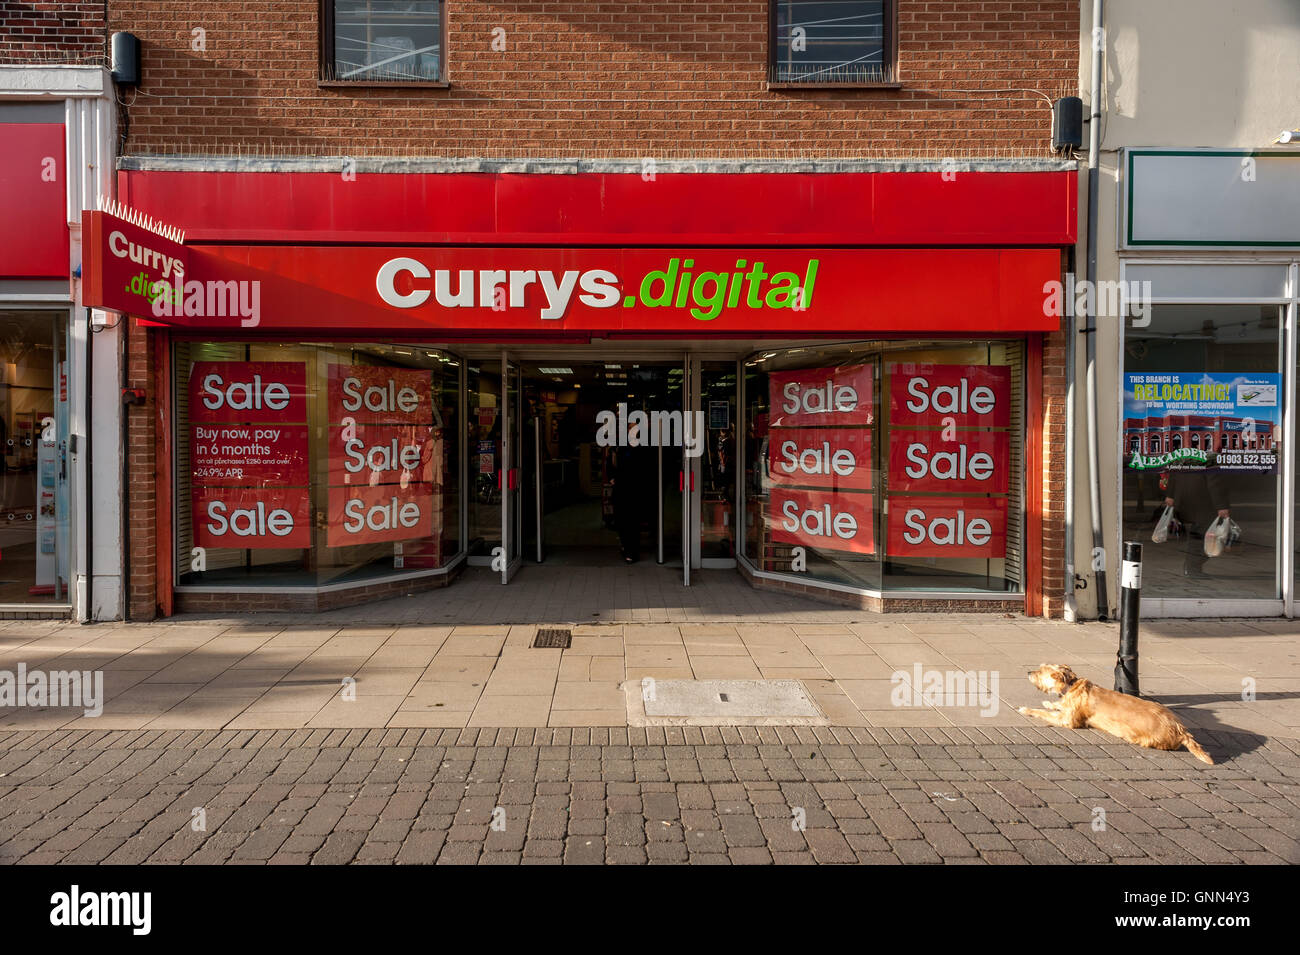 A branch of Currys Digital on George Street Hove - Stock Image